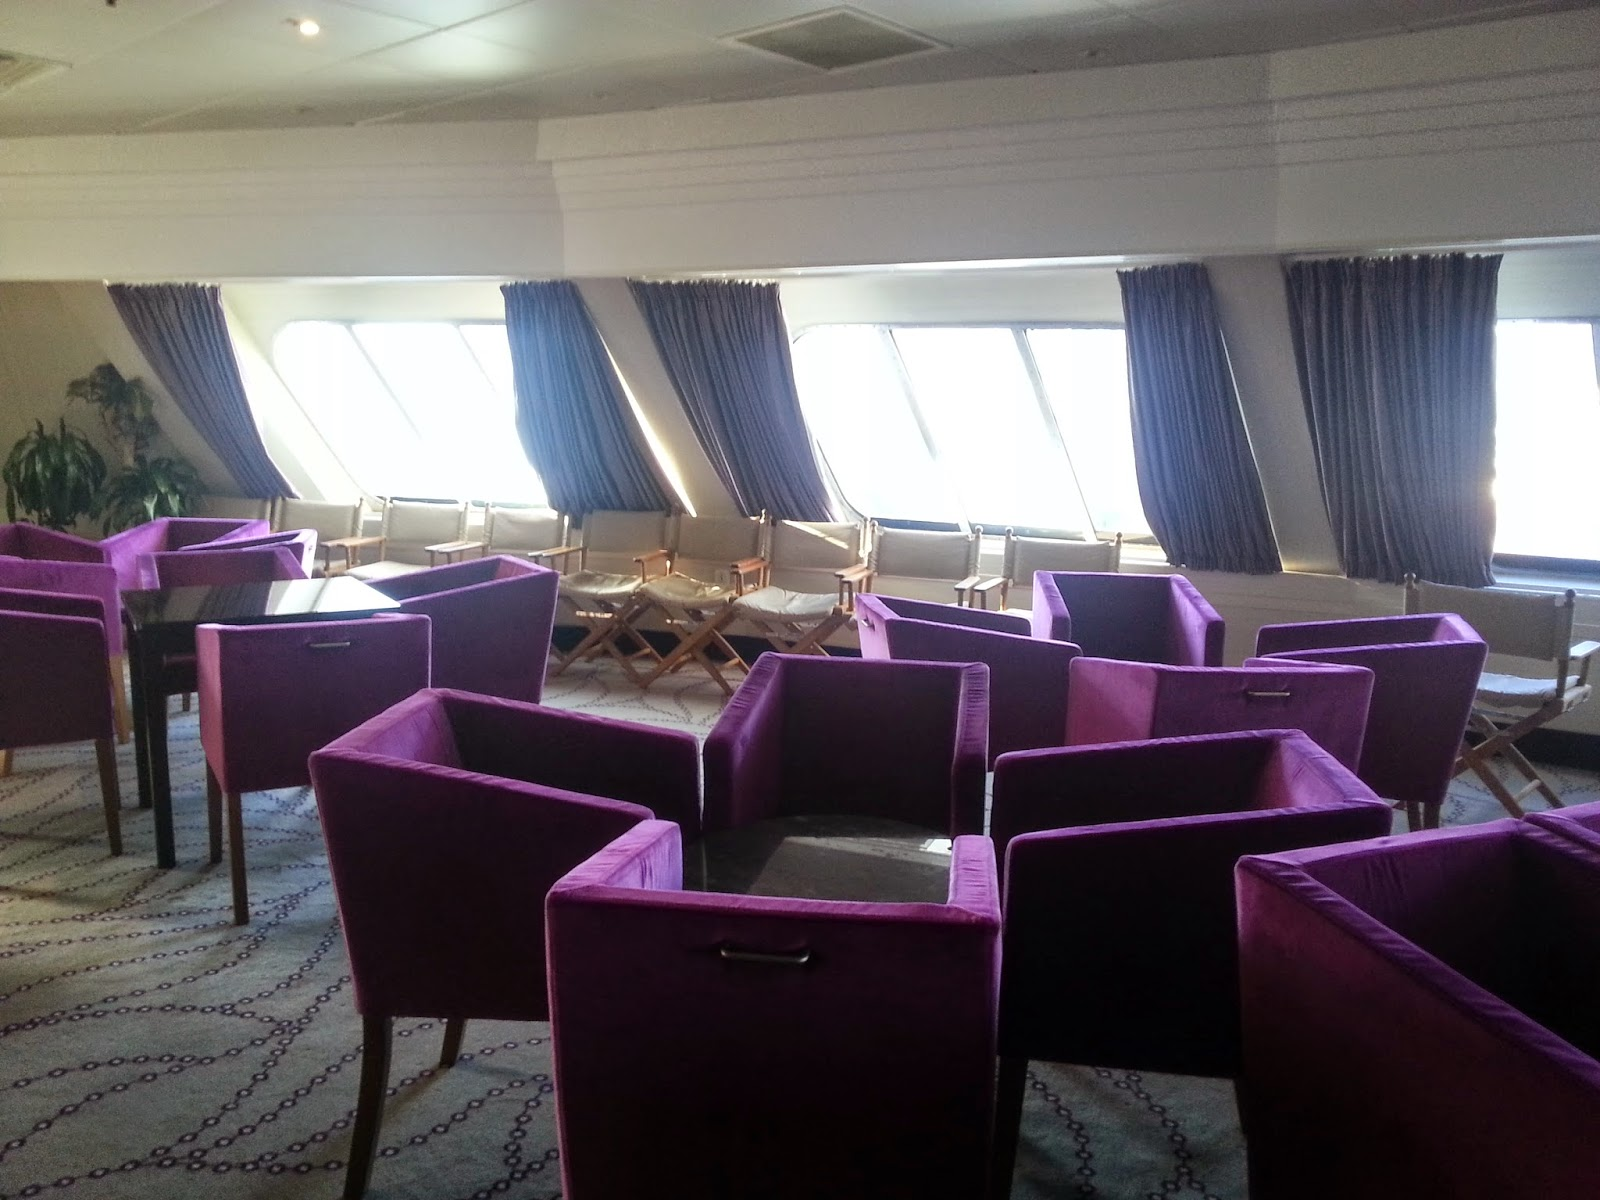 On Board Voyages of Discovery's Cruise Ship MV Voyager - Lookout Lounge